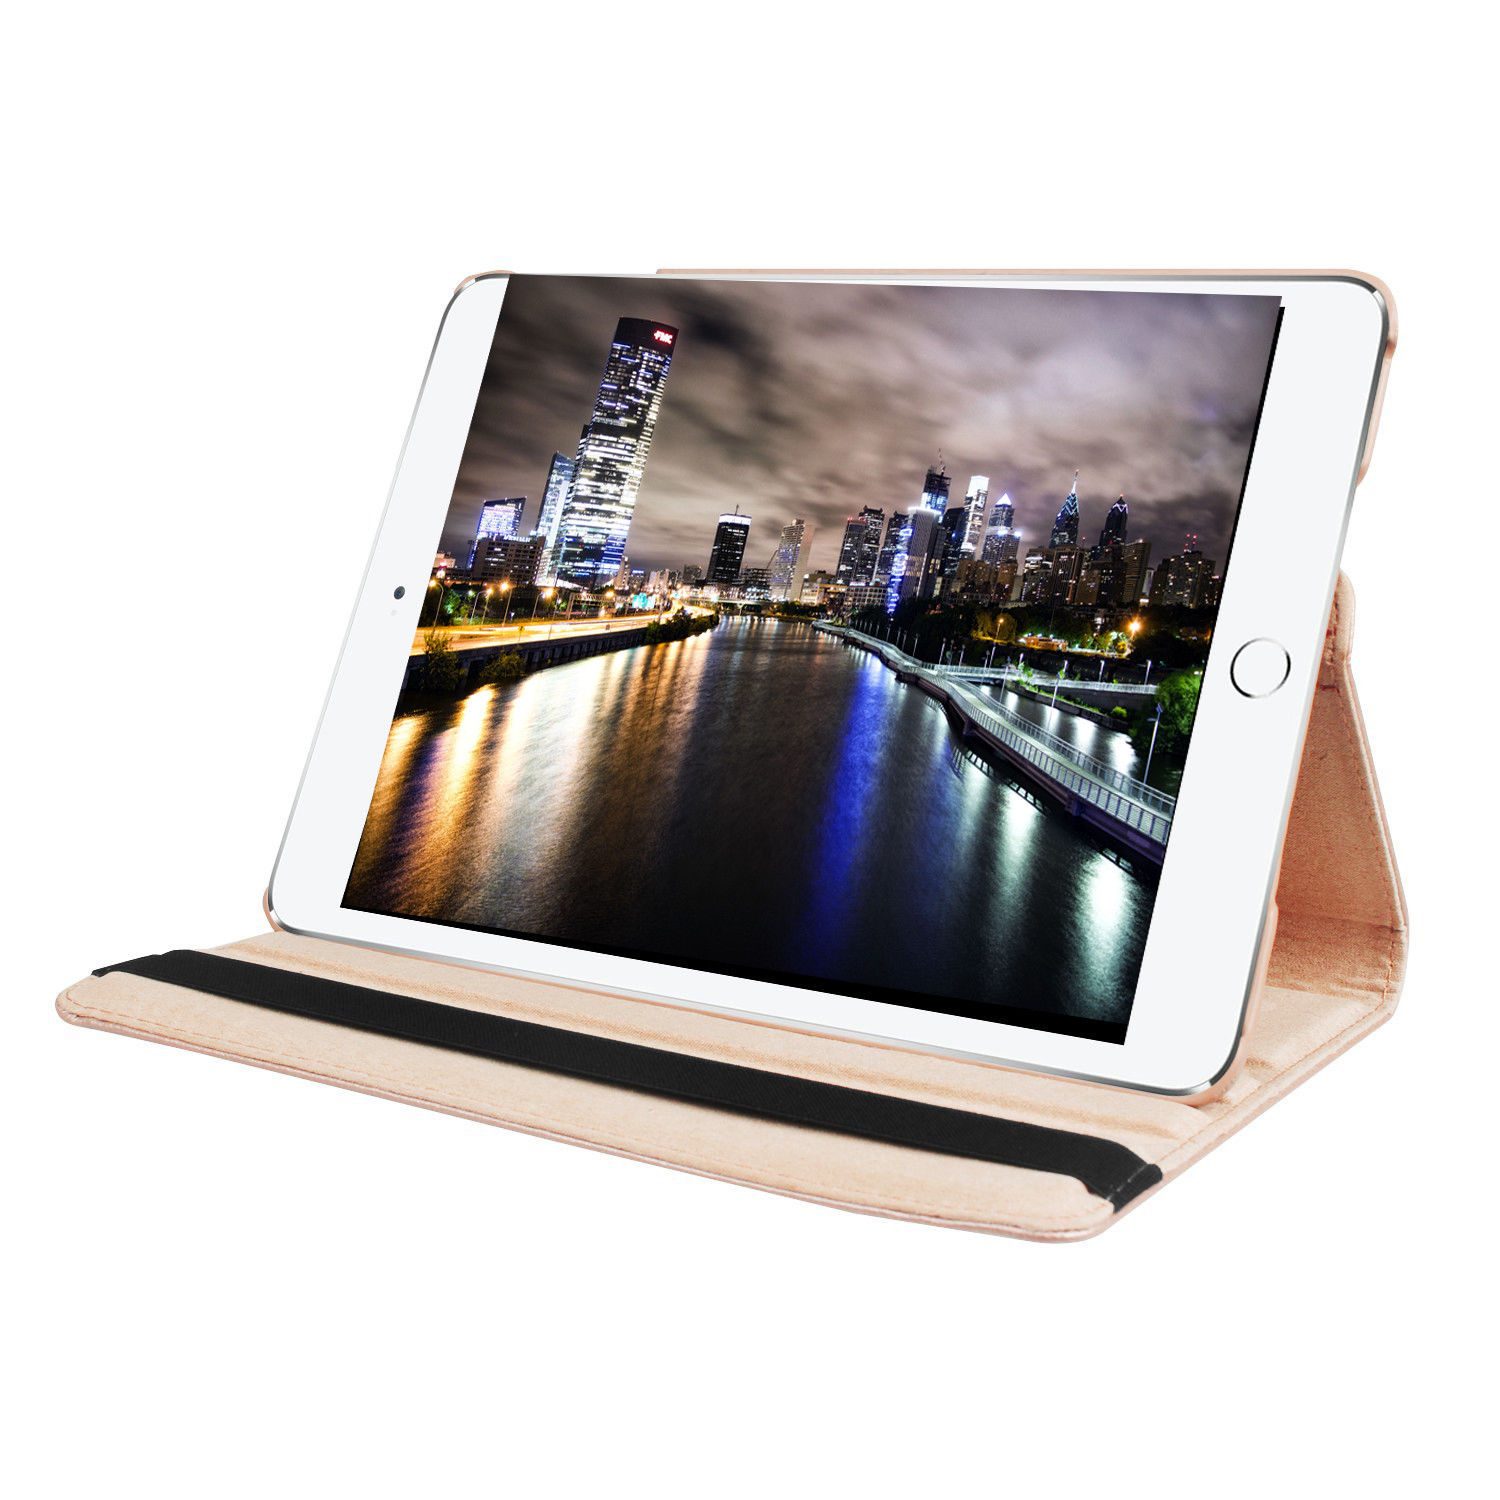 Custodia-per-Apple-iPad-Pro-2017-iPad-Air-3-10-5-Smart-Cover-Case-Custodia-Protettiva miniatura 99